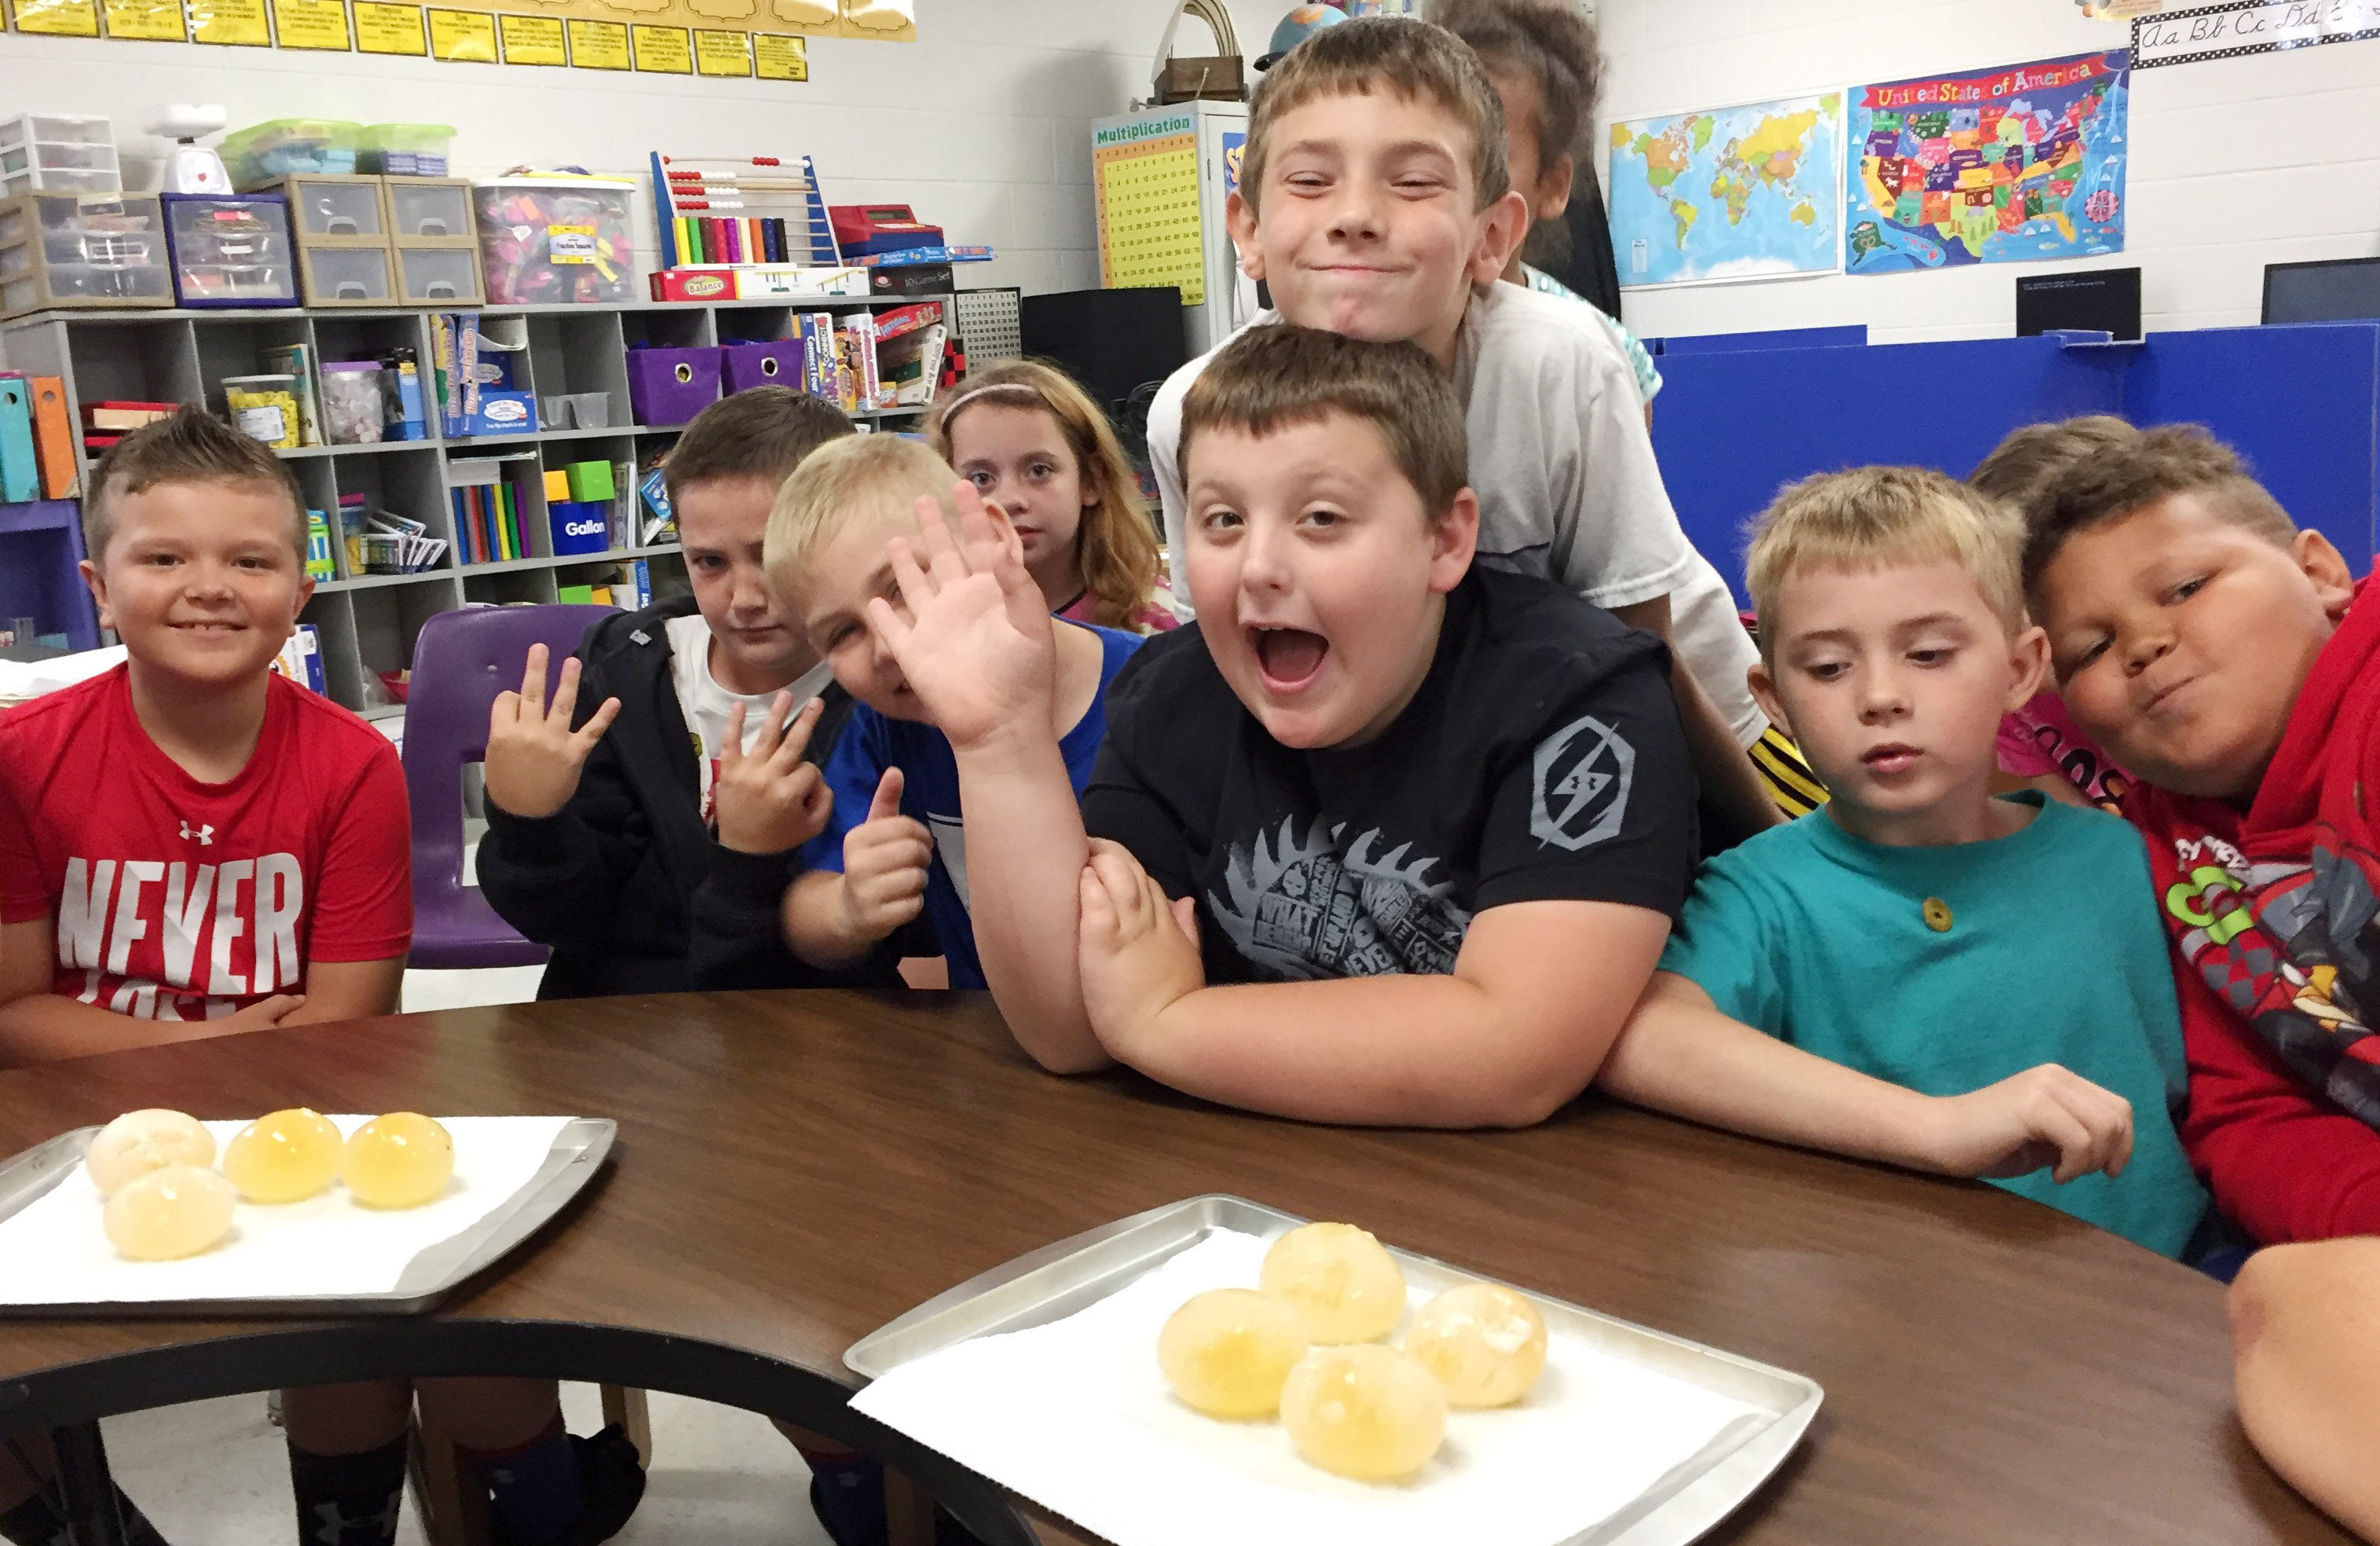 CES third-graders smile as they prepare to drop their eggs. From left are Cayton Lawhorn, Luke Adkins, Joseph Greer, Angelina Babbs, Braxton Tucker, Aidan Wilson, Devyn Tingle and Drevonte Gurley.